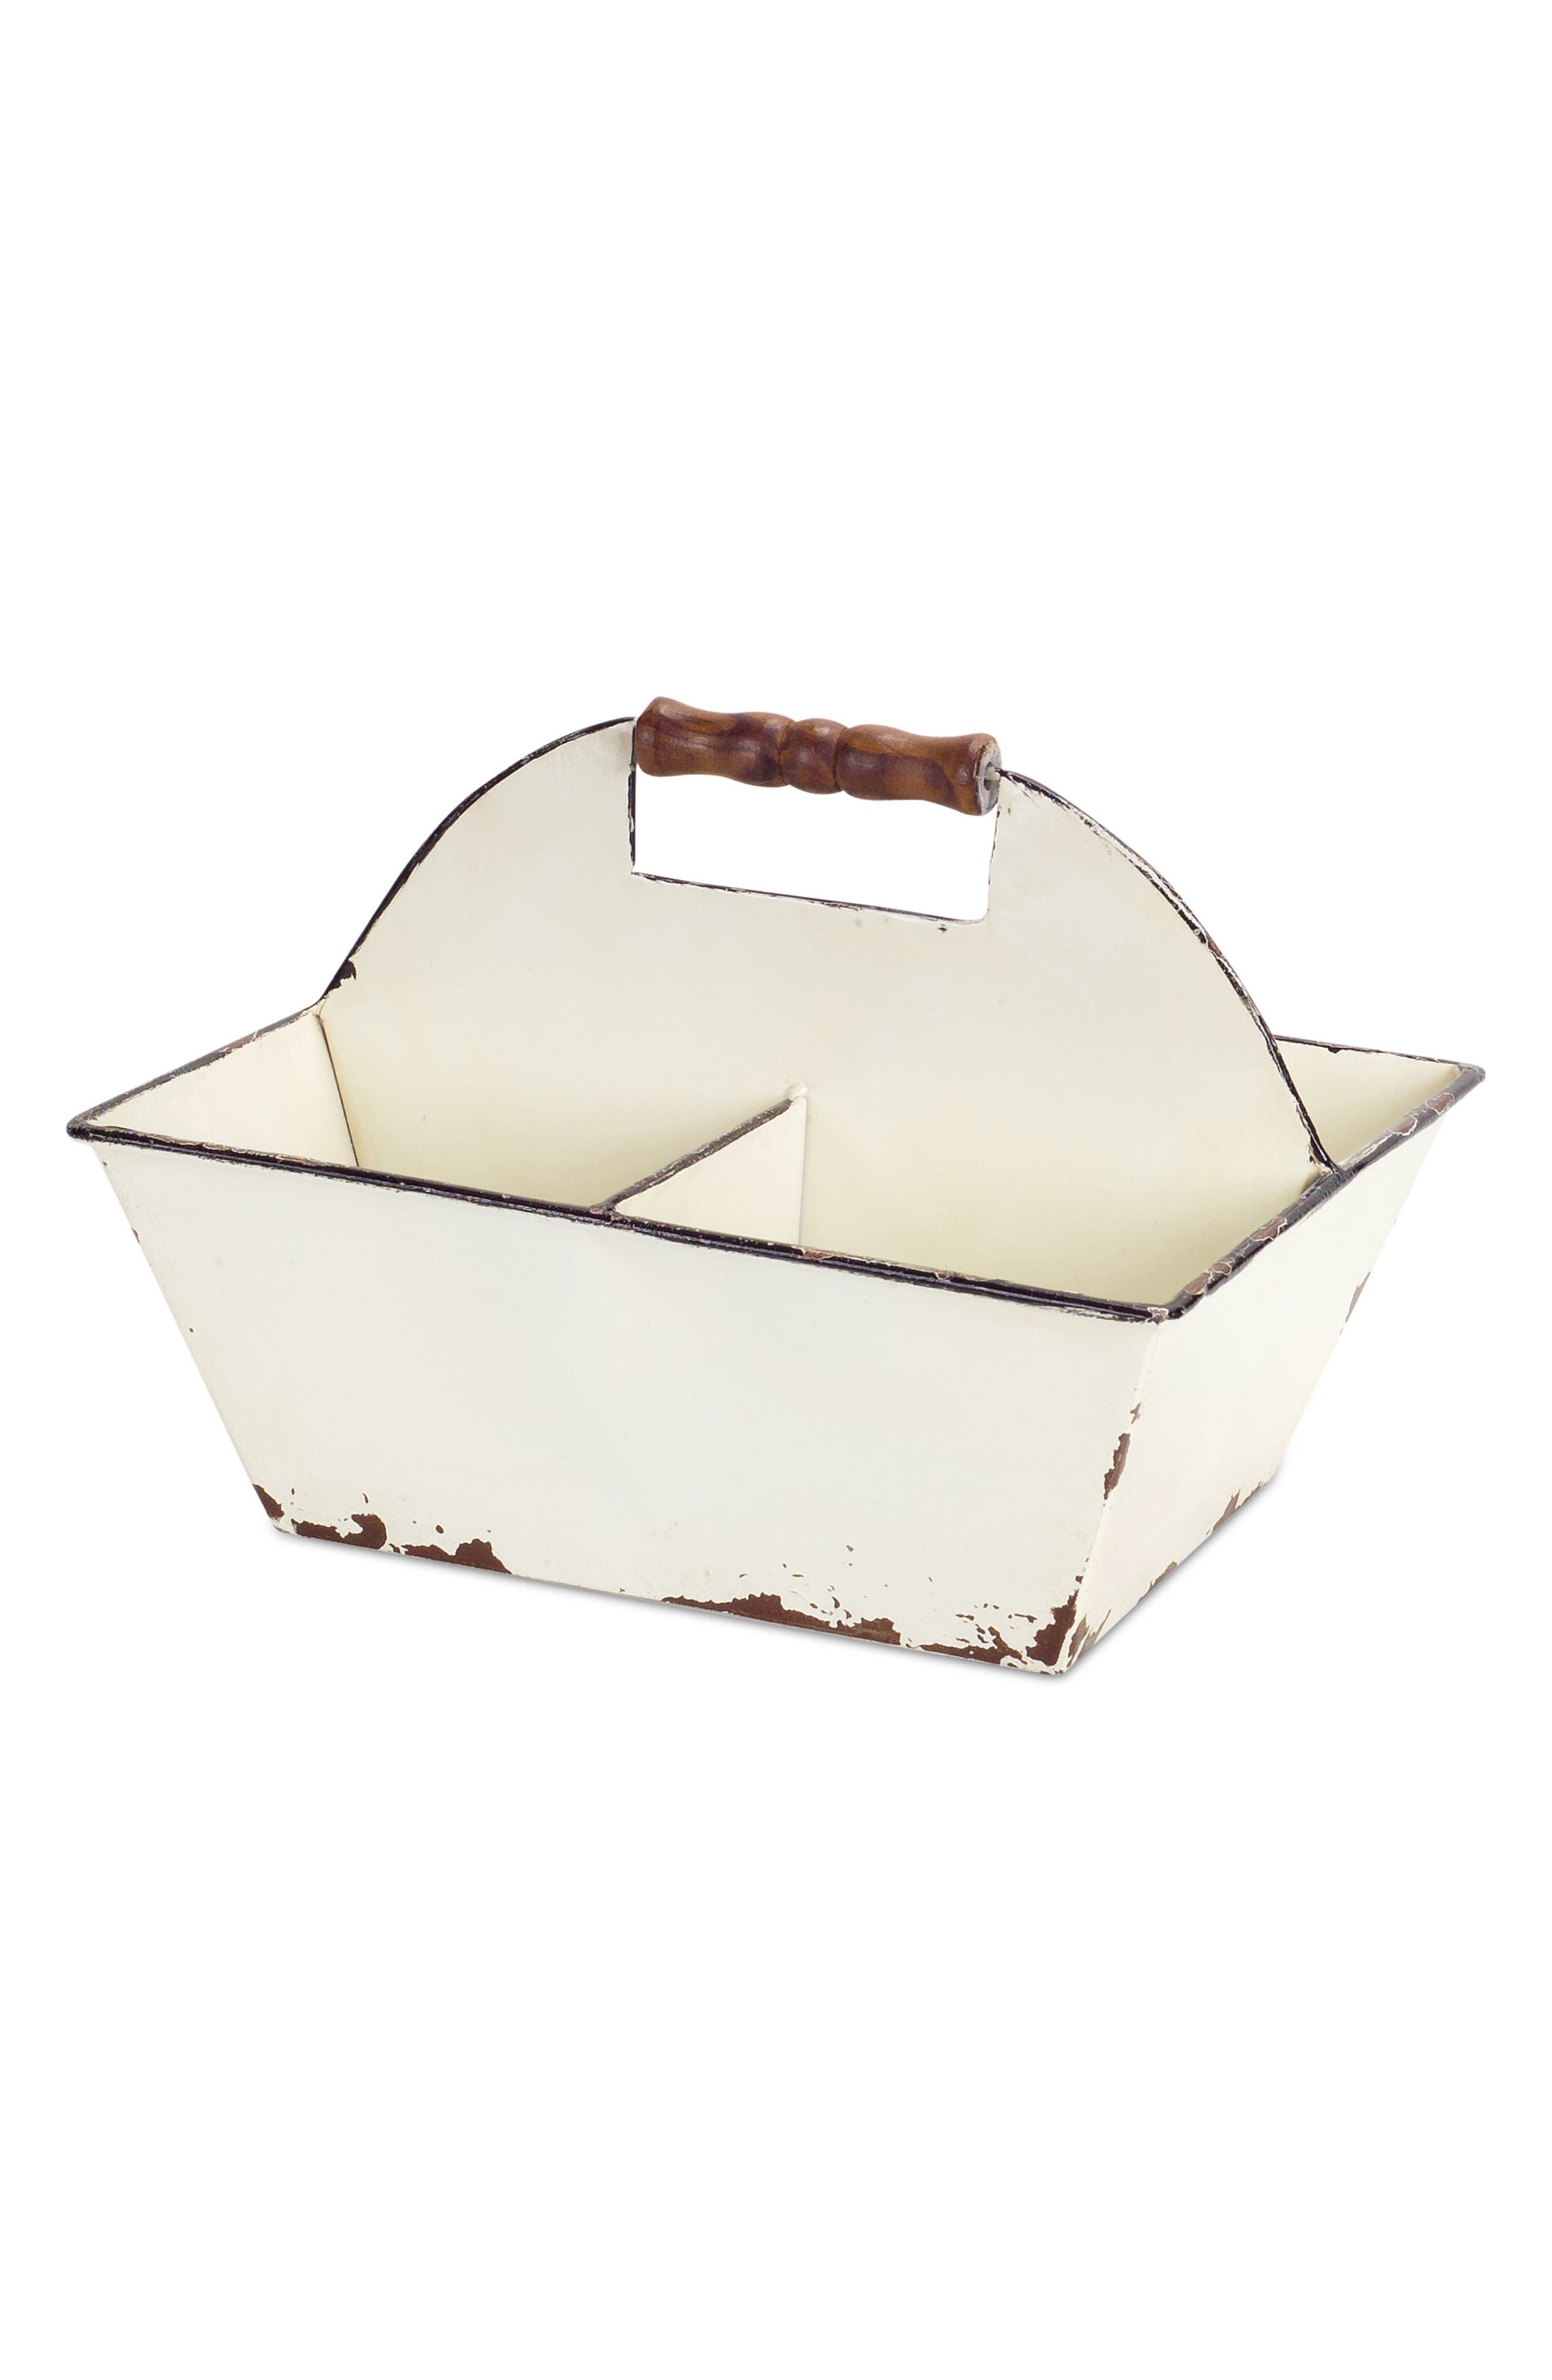 Melrose Gifts Metal Divided Carrying Tray